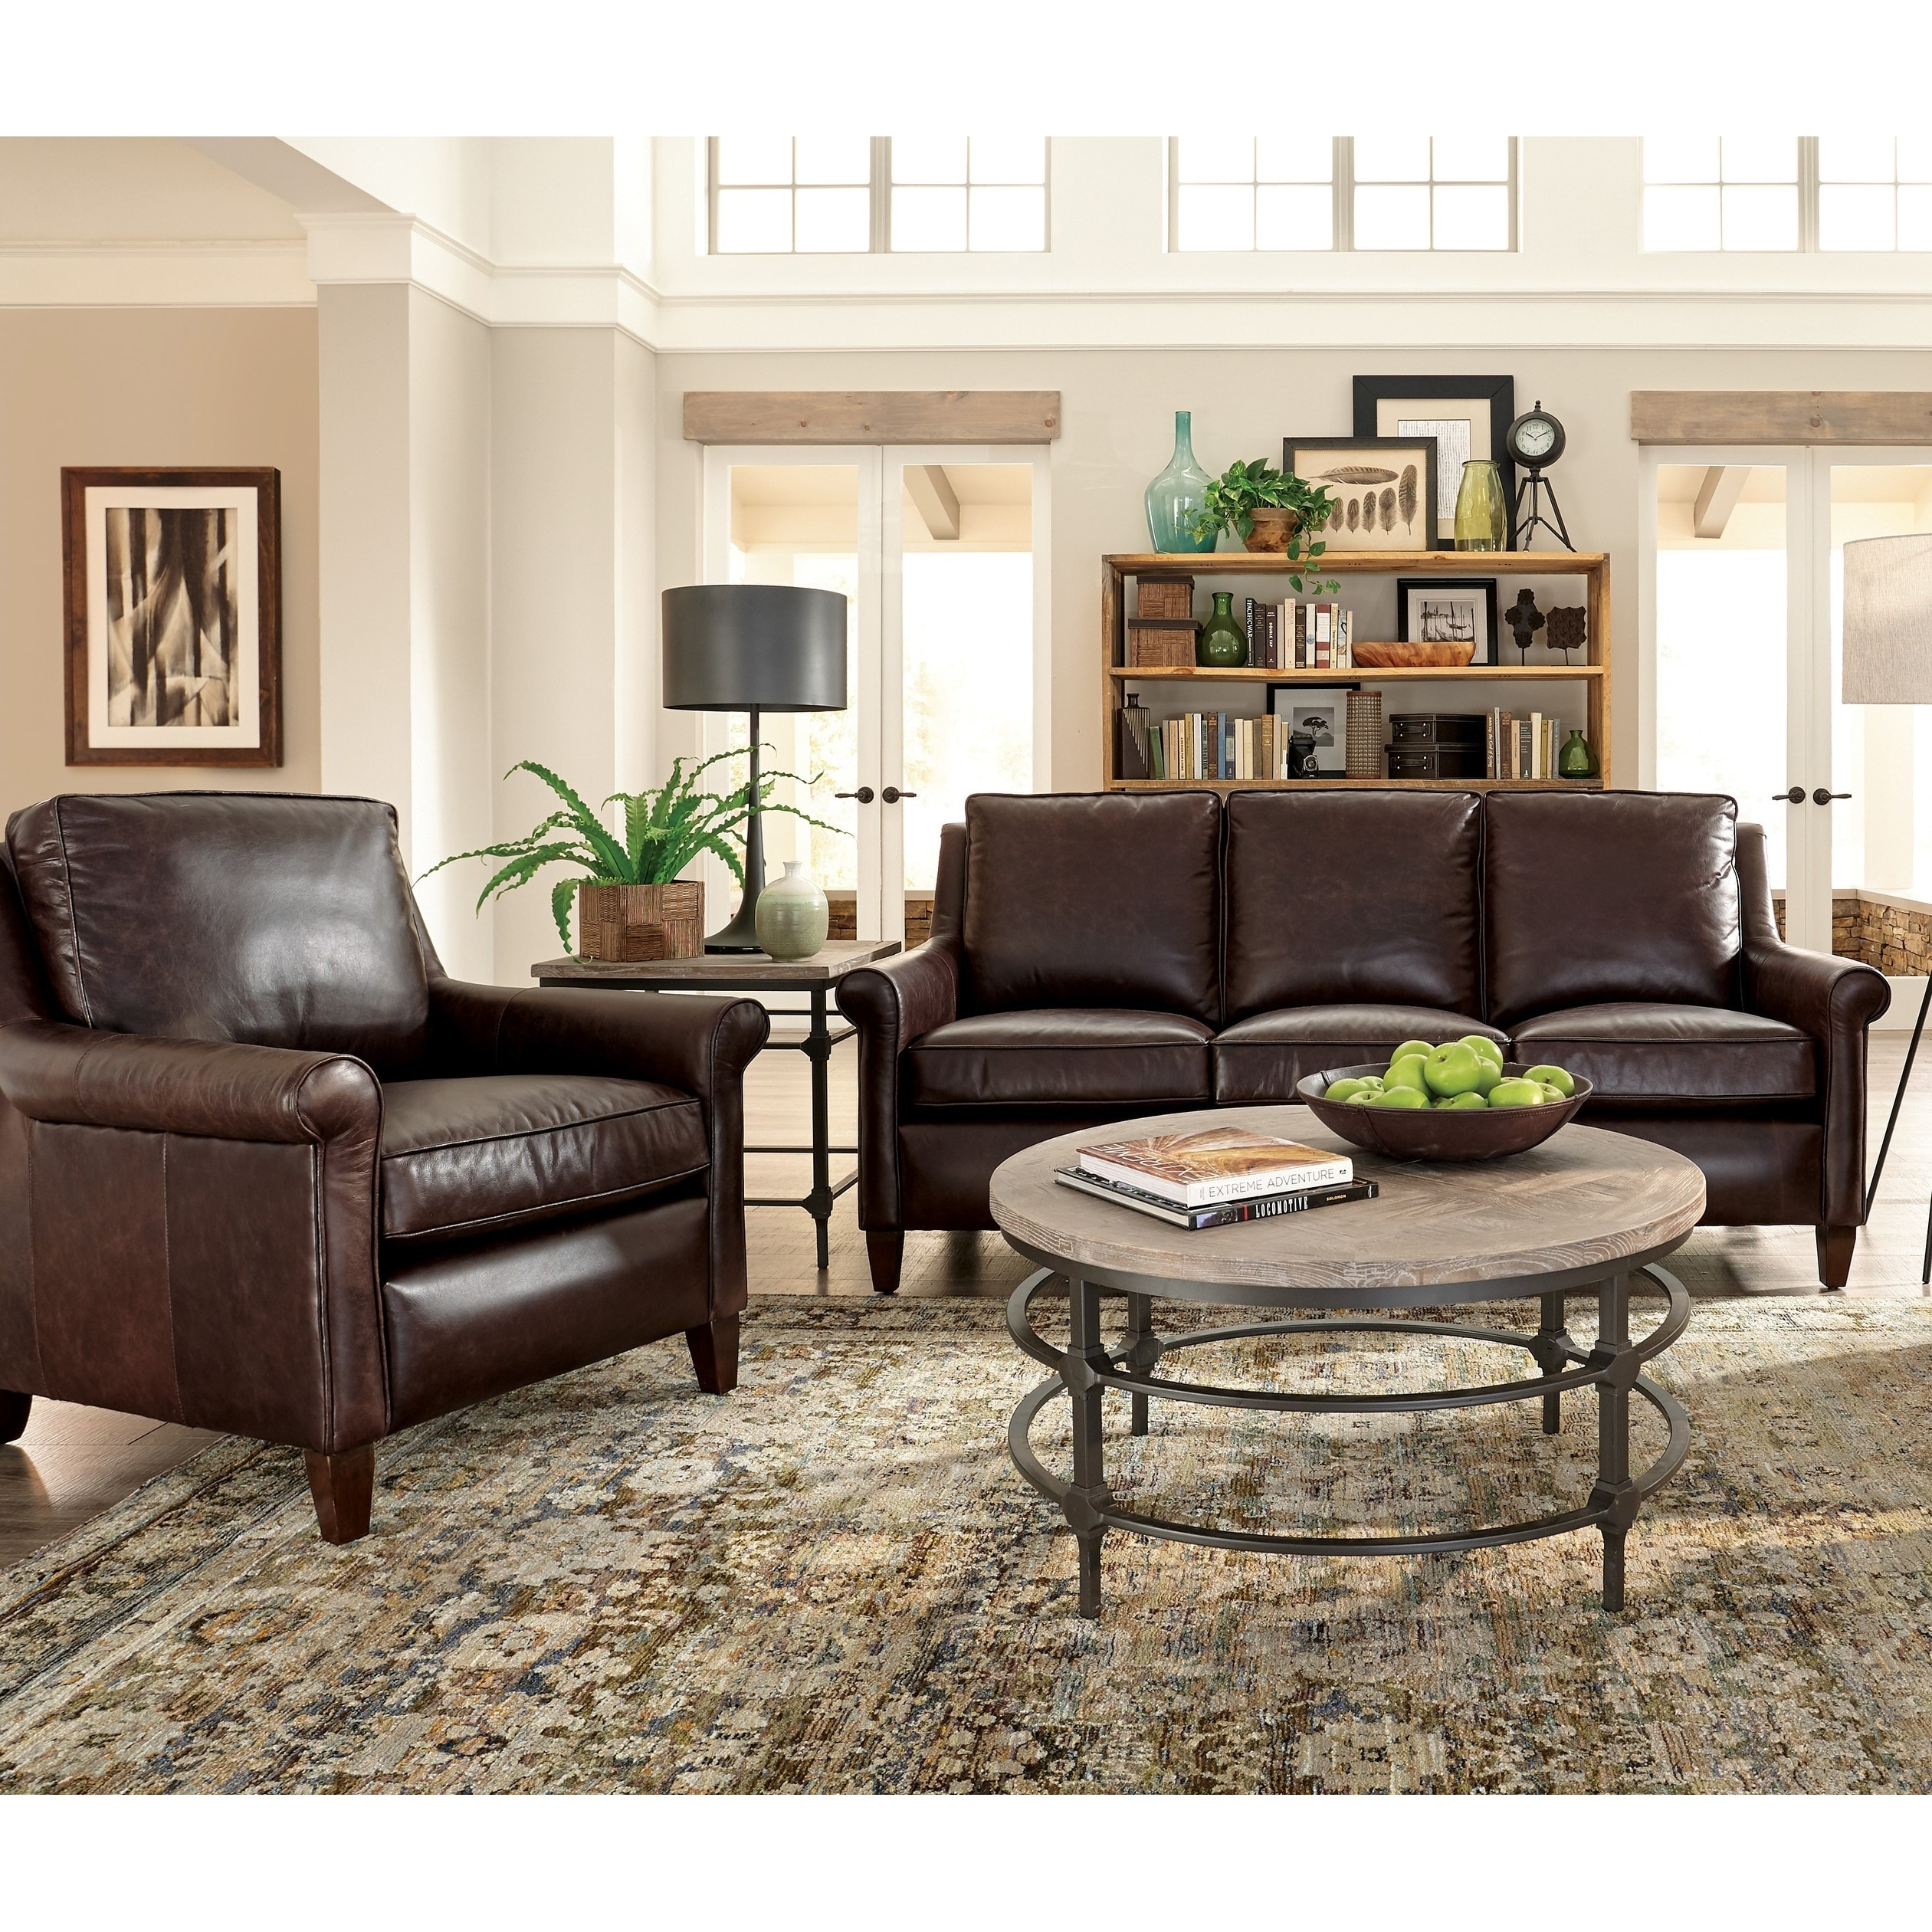 Shop jericho two piece dark brown leather queen sleeper sofa chair living room set on sale free shipping today overstock com 26451499